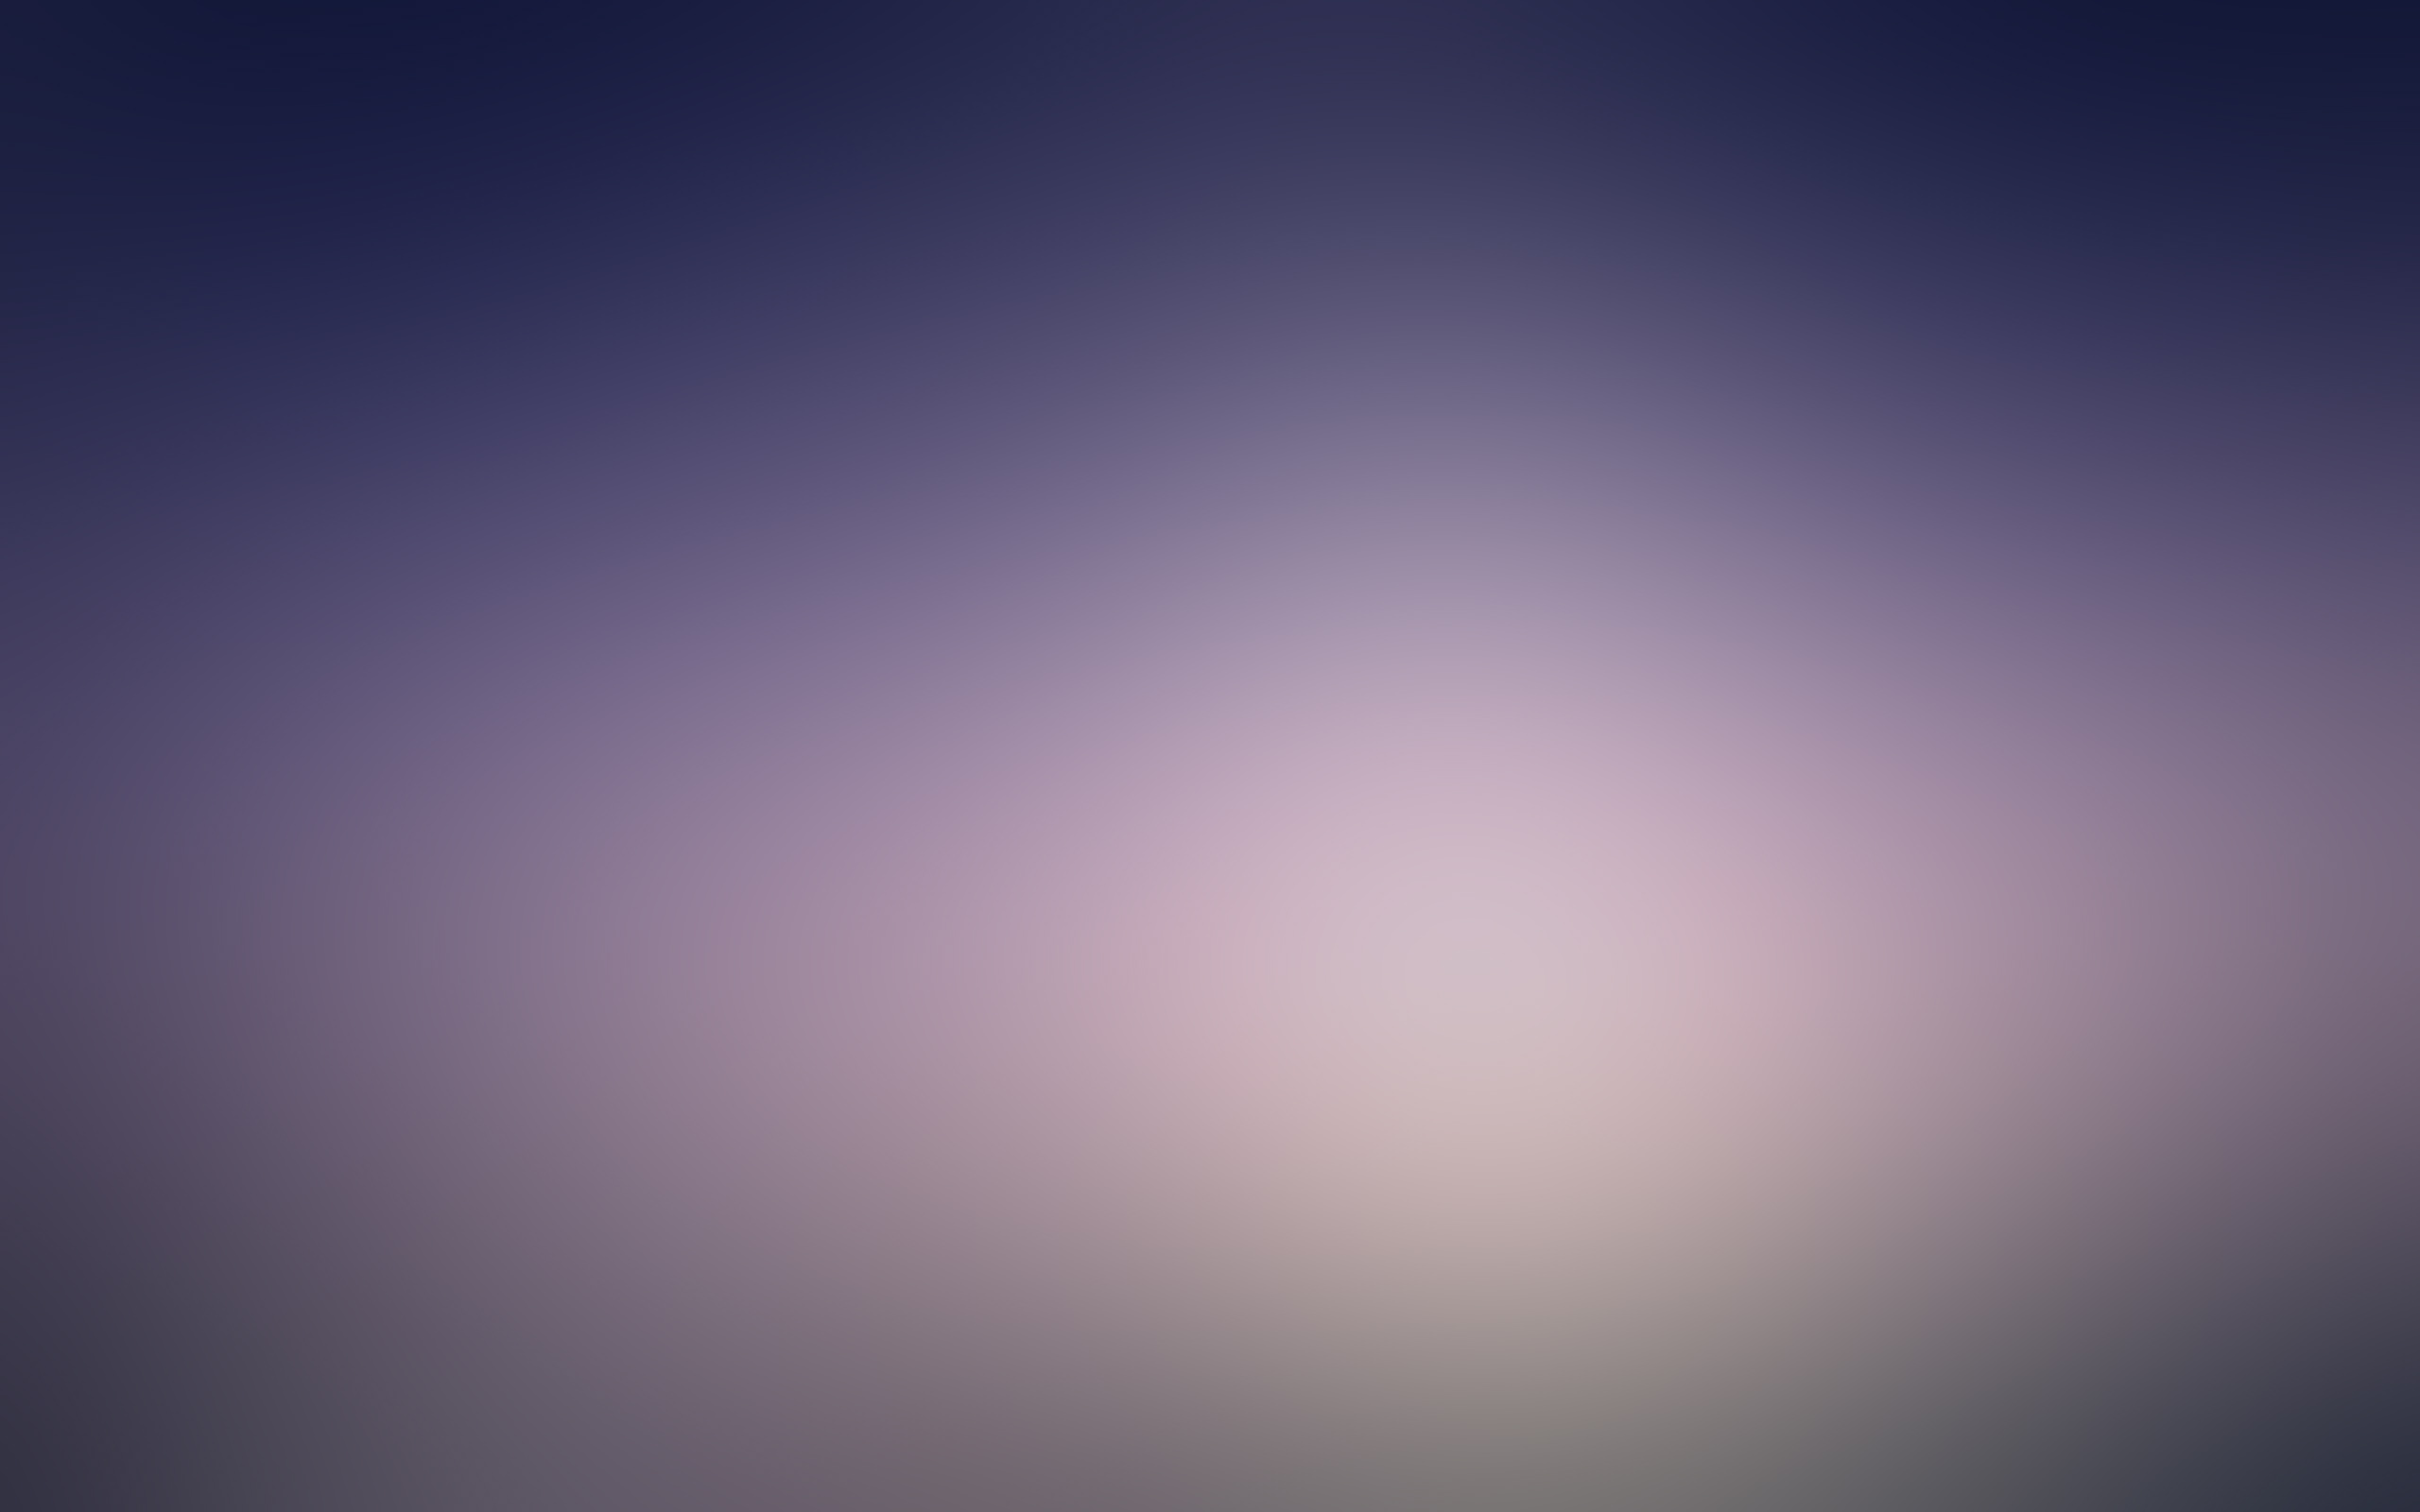 Wallpapers For Girls Fuzzy Smooth Blue Gradient Wallpapers Smooth Blue Gradient